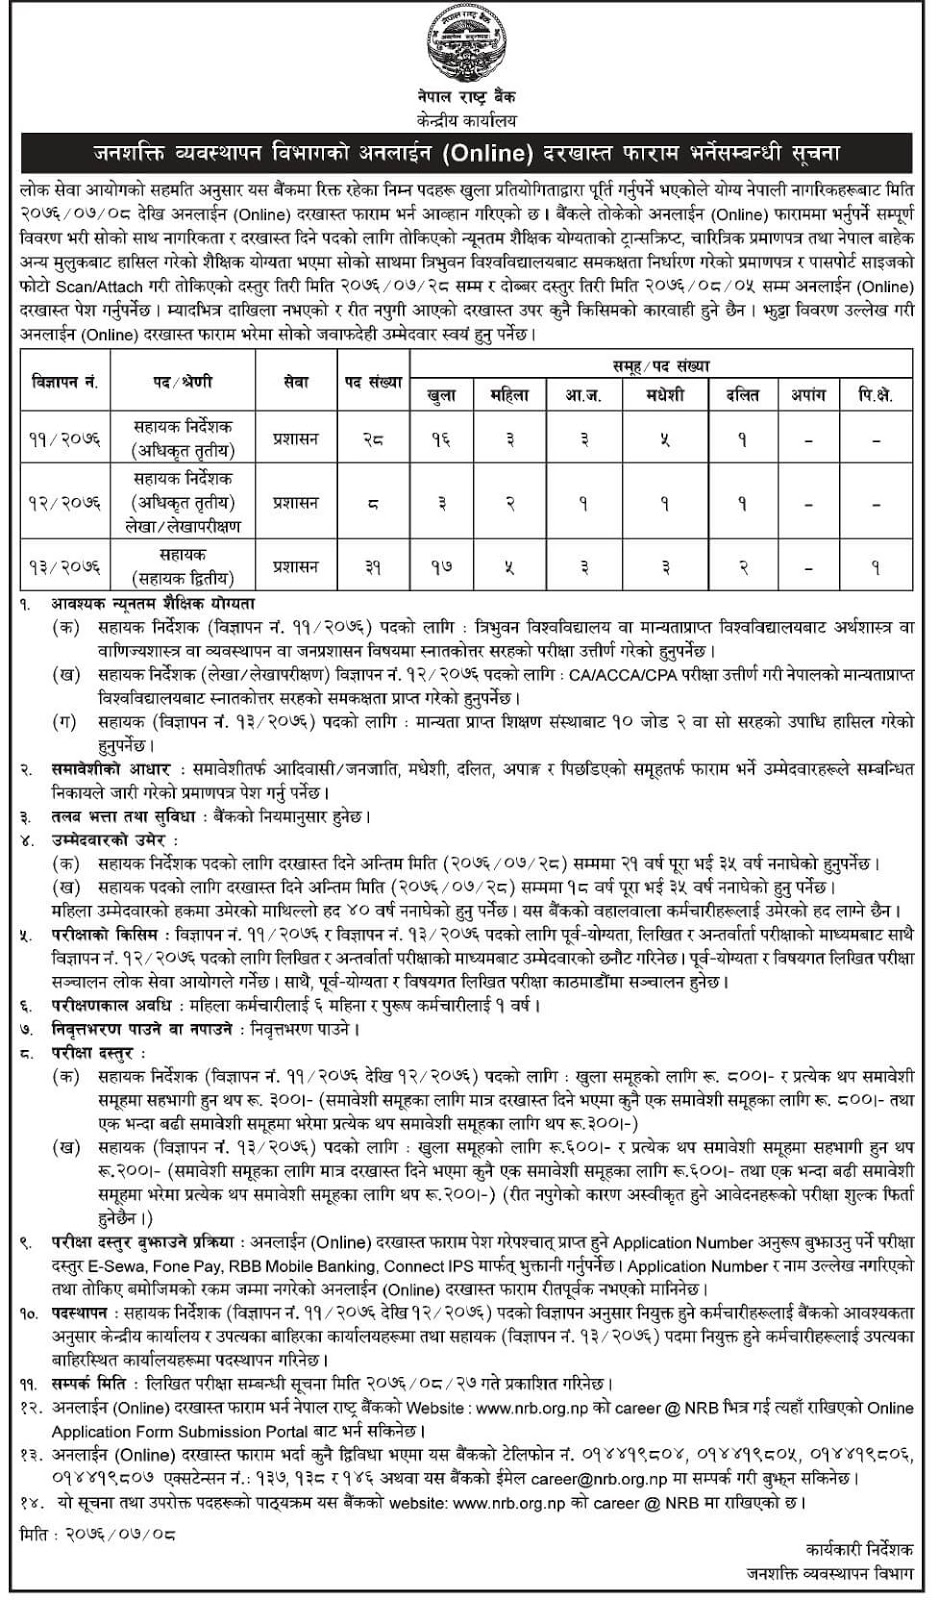 Nepal Rastra Bank Vacancies: Assistant Directors & Assistants